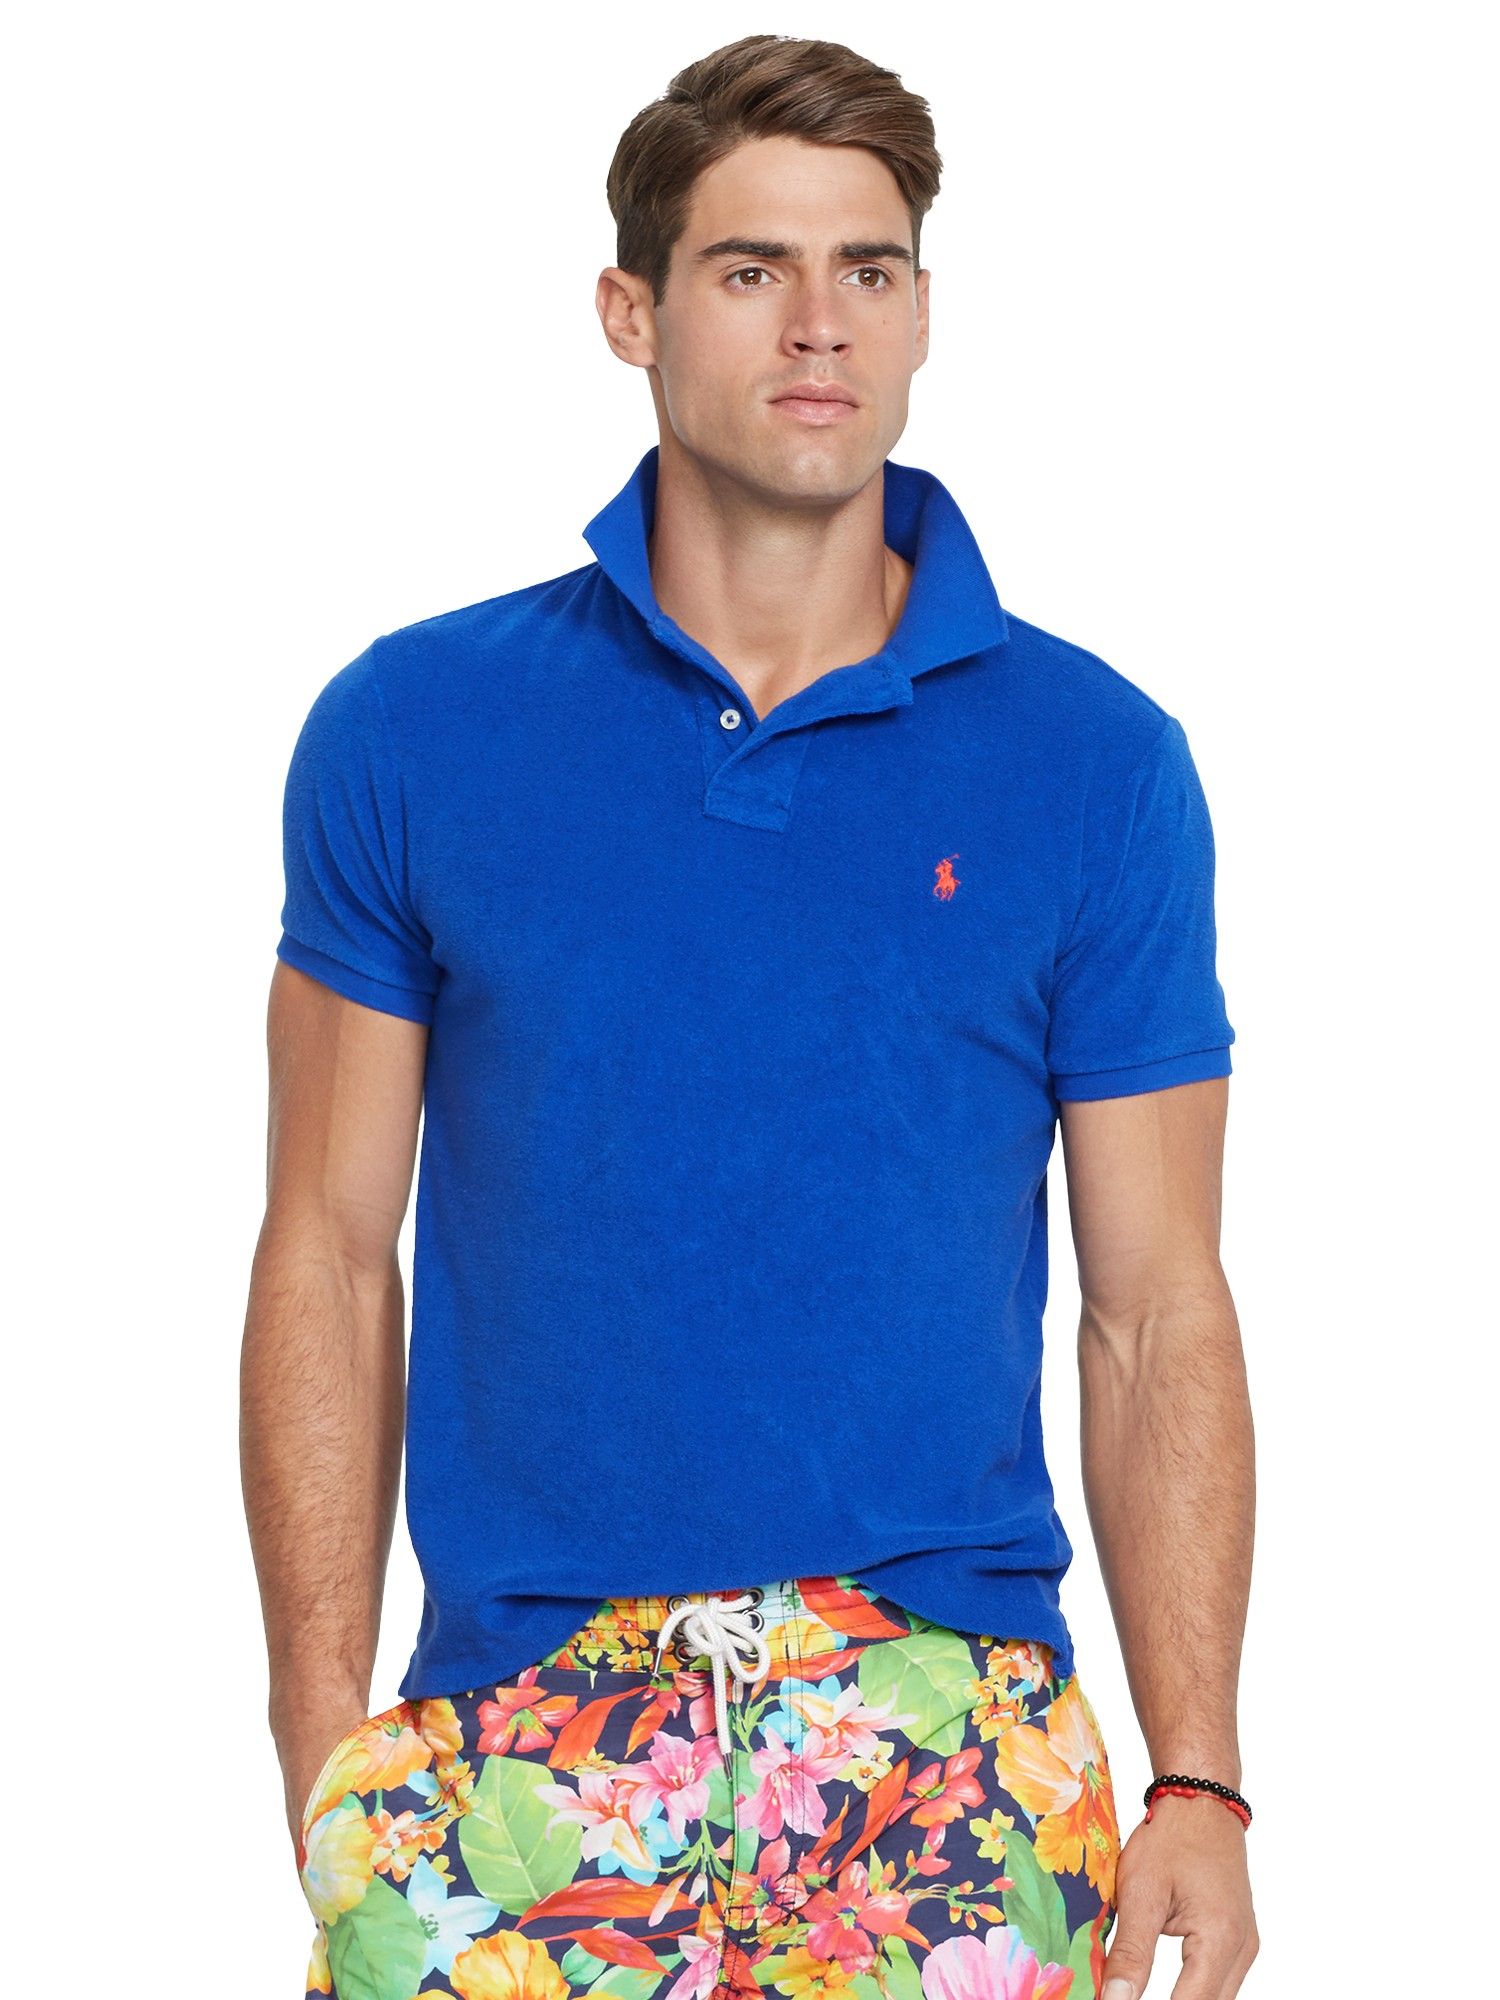 Blue Custom Polo Cloth Men Terry In Ralph For Shirt Lauren Fit dWCexBor